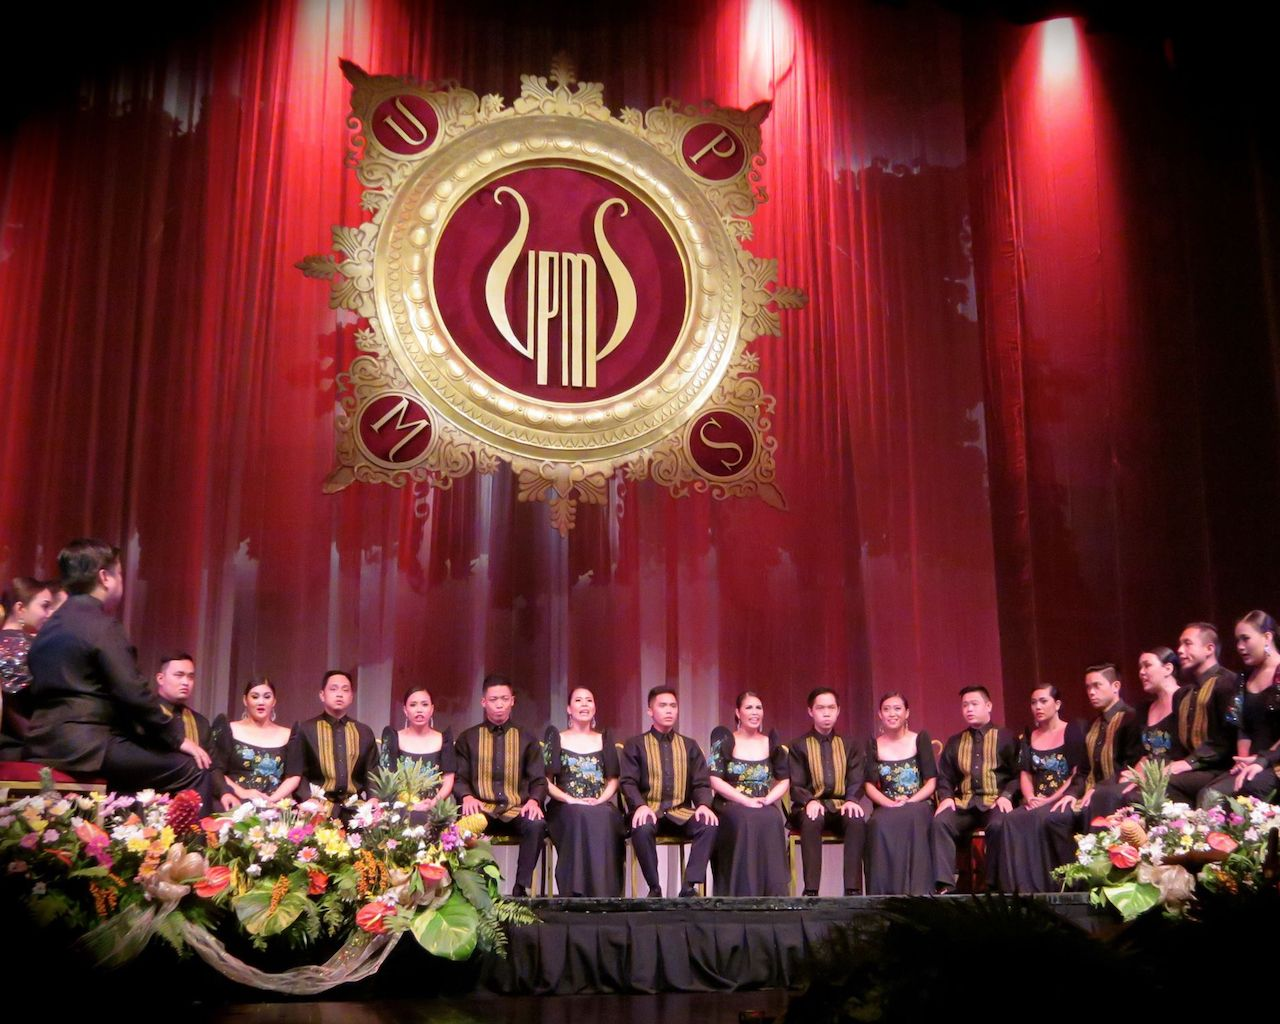 Philippine Madrigal Singers: Get To Know The Nation's Most Respected Choir